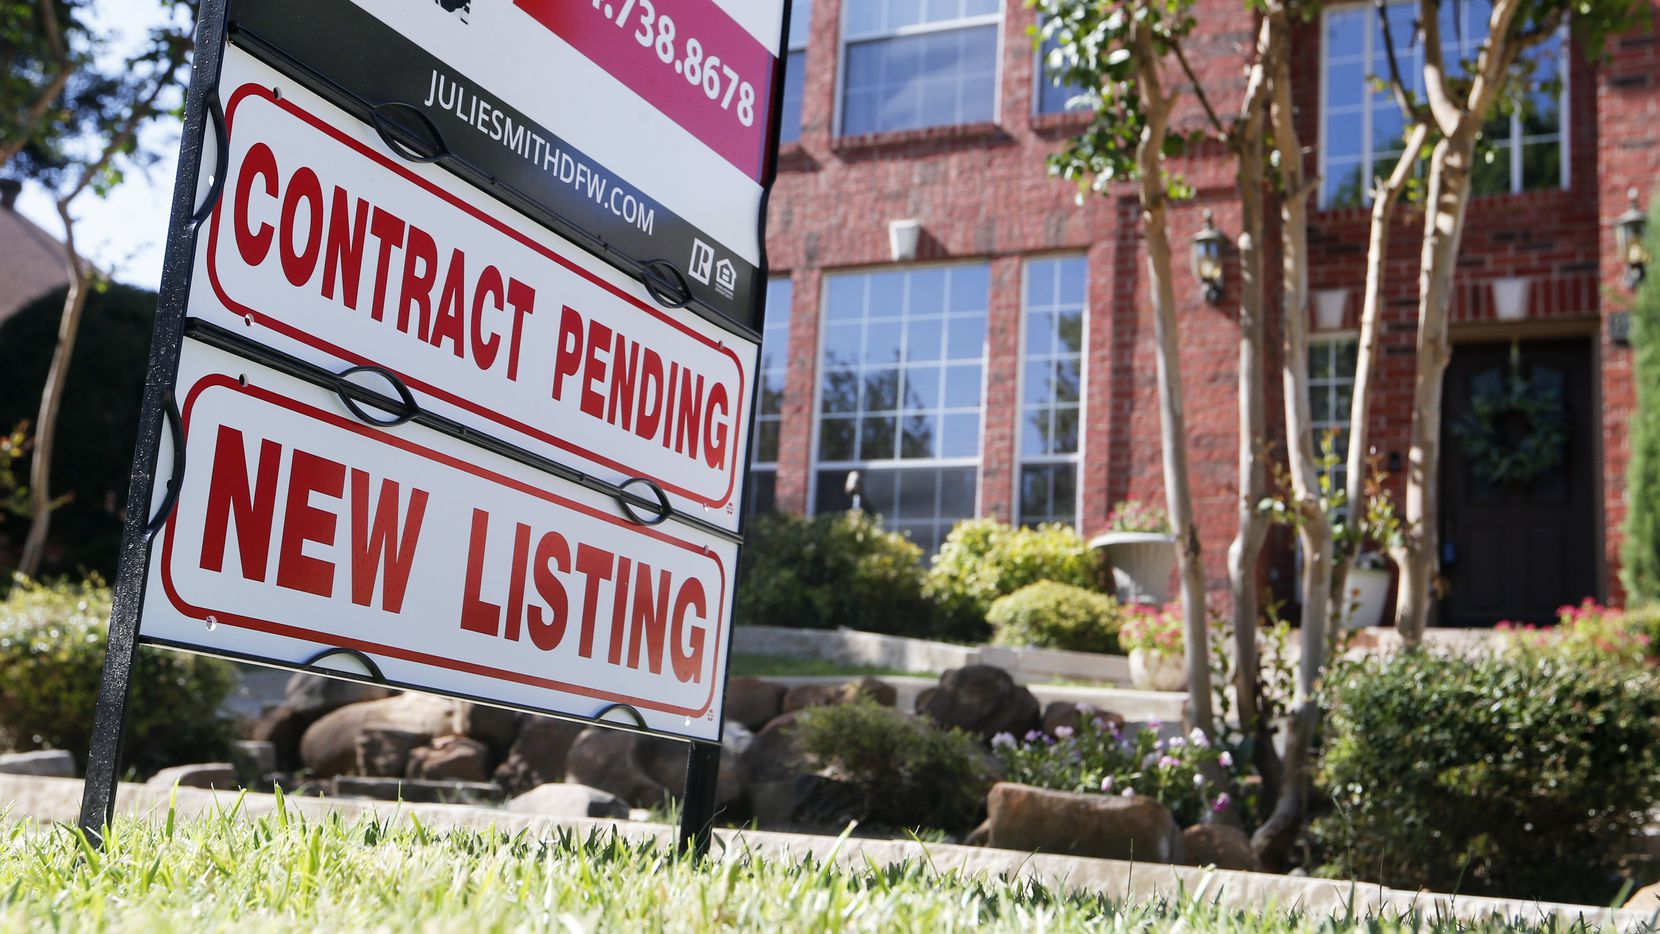 With home listings in North Texas down by more than 50%, prices have risen sharply this year.